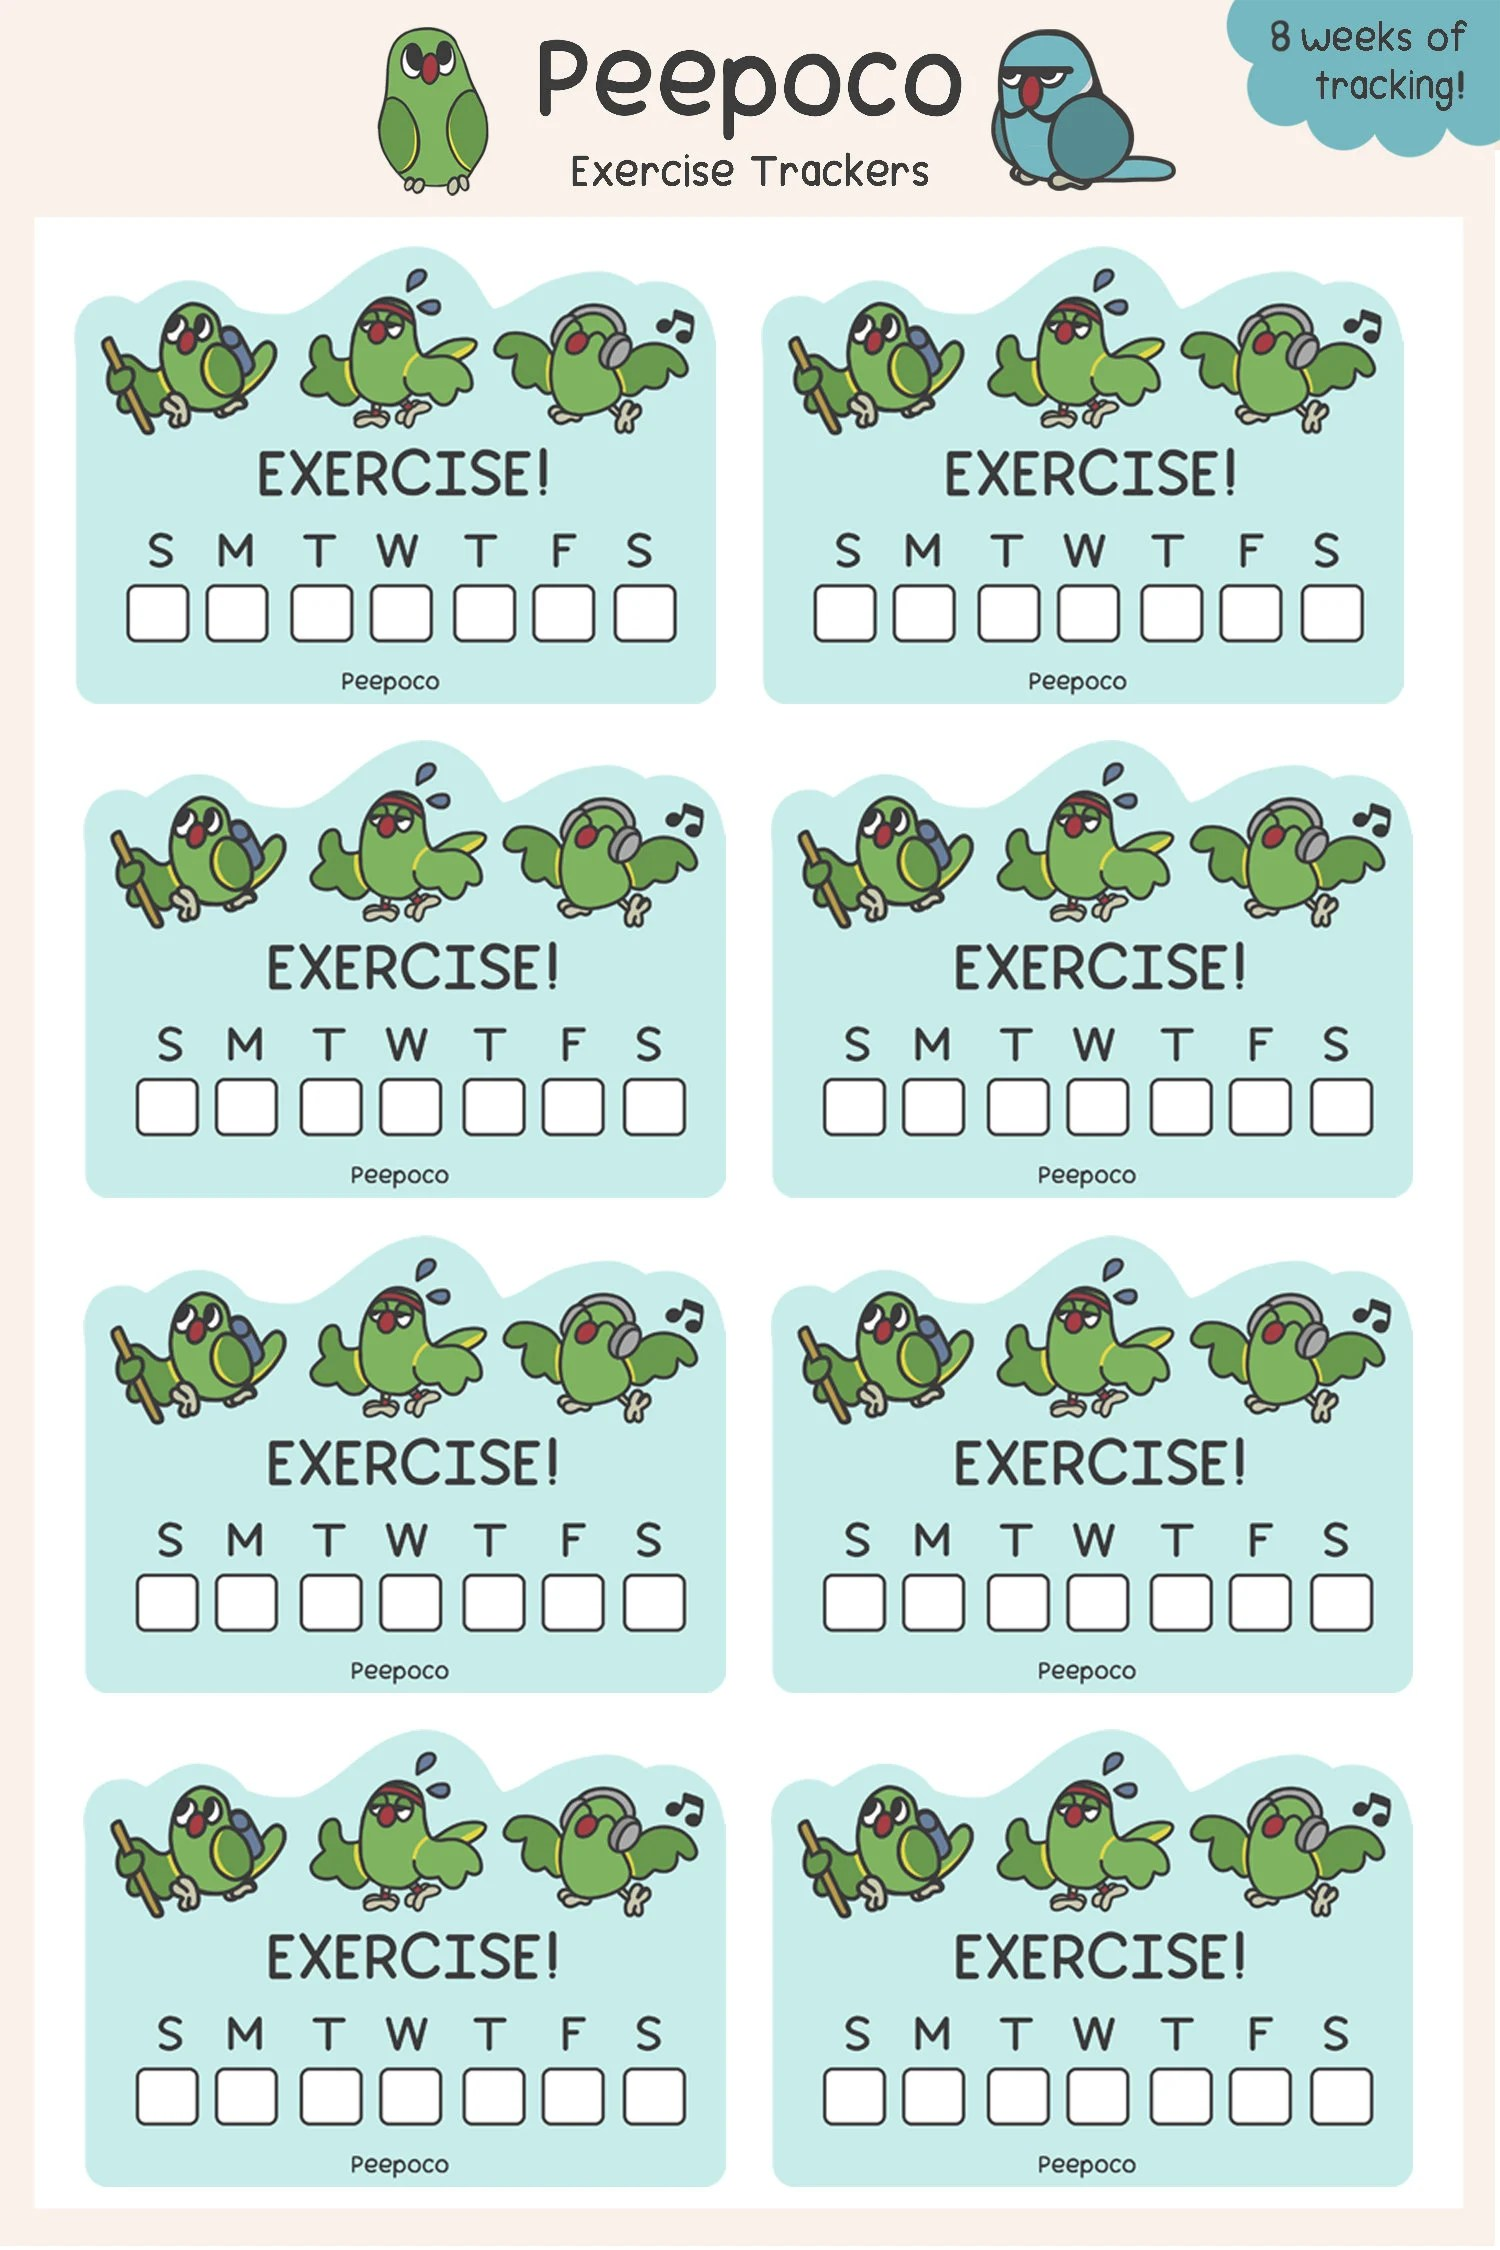 Exercise Sheets Tracking